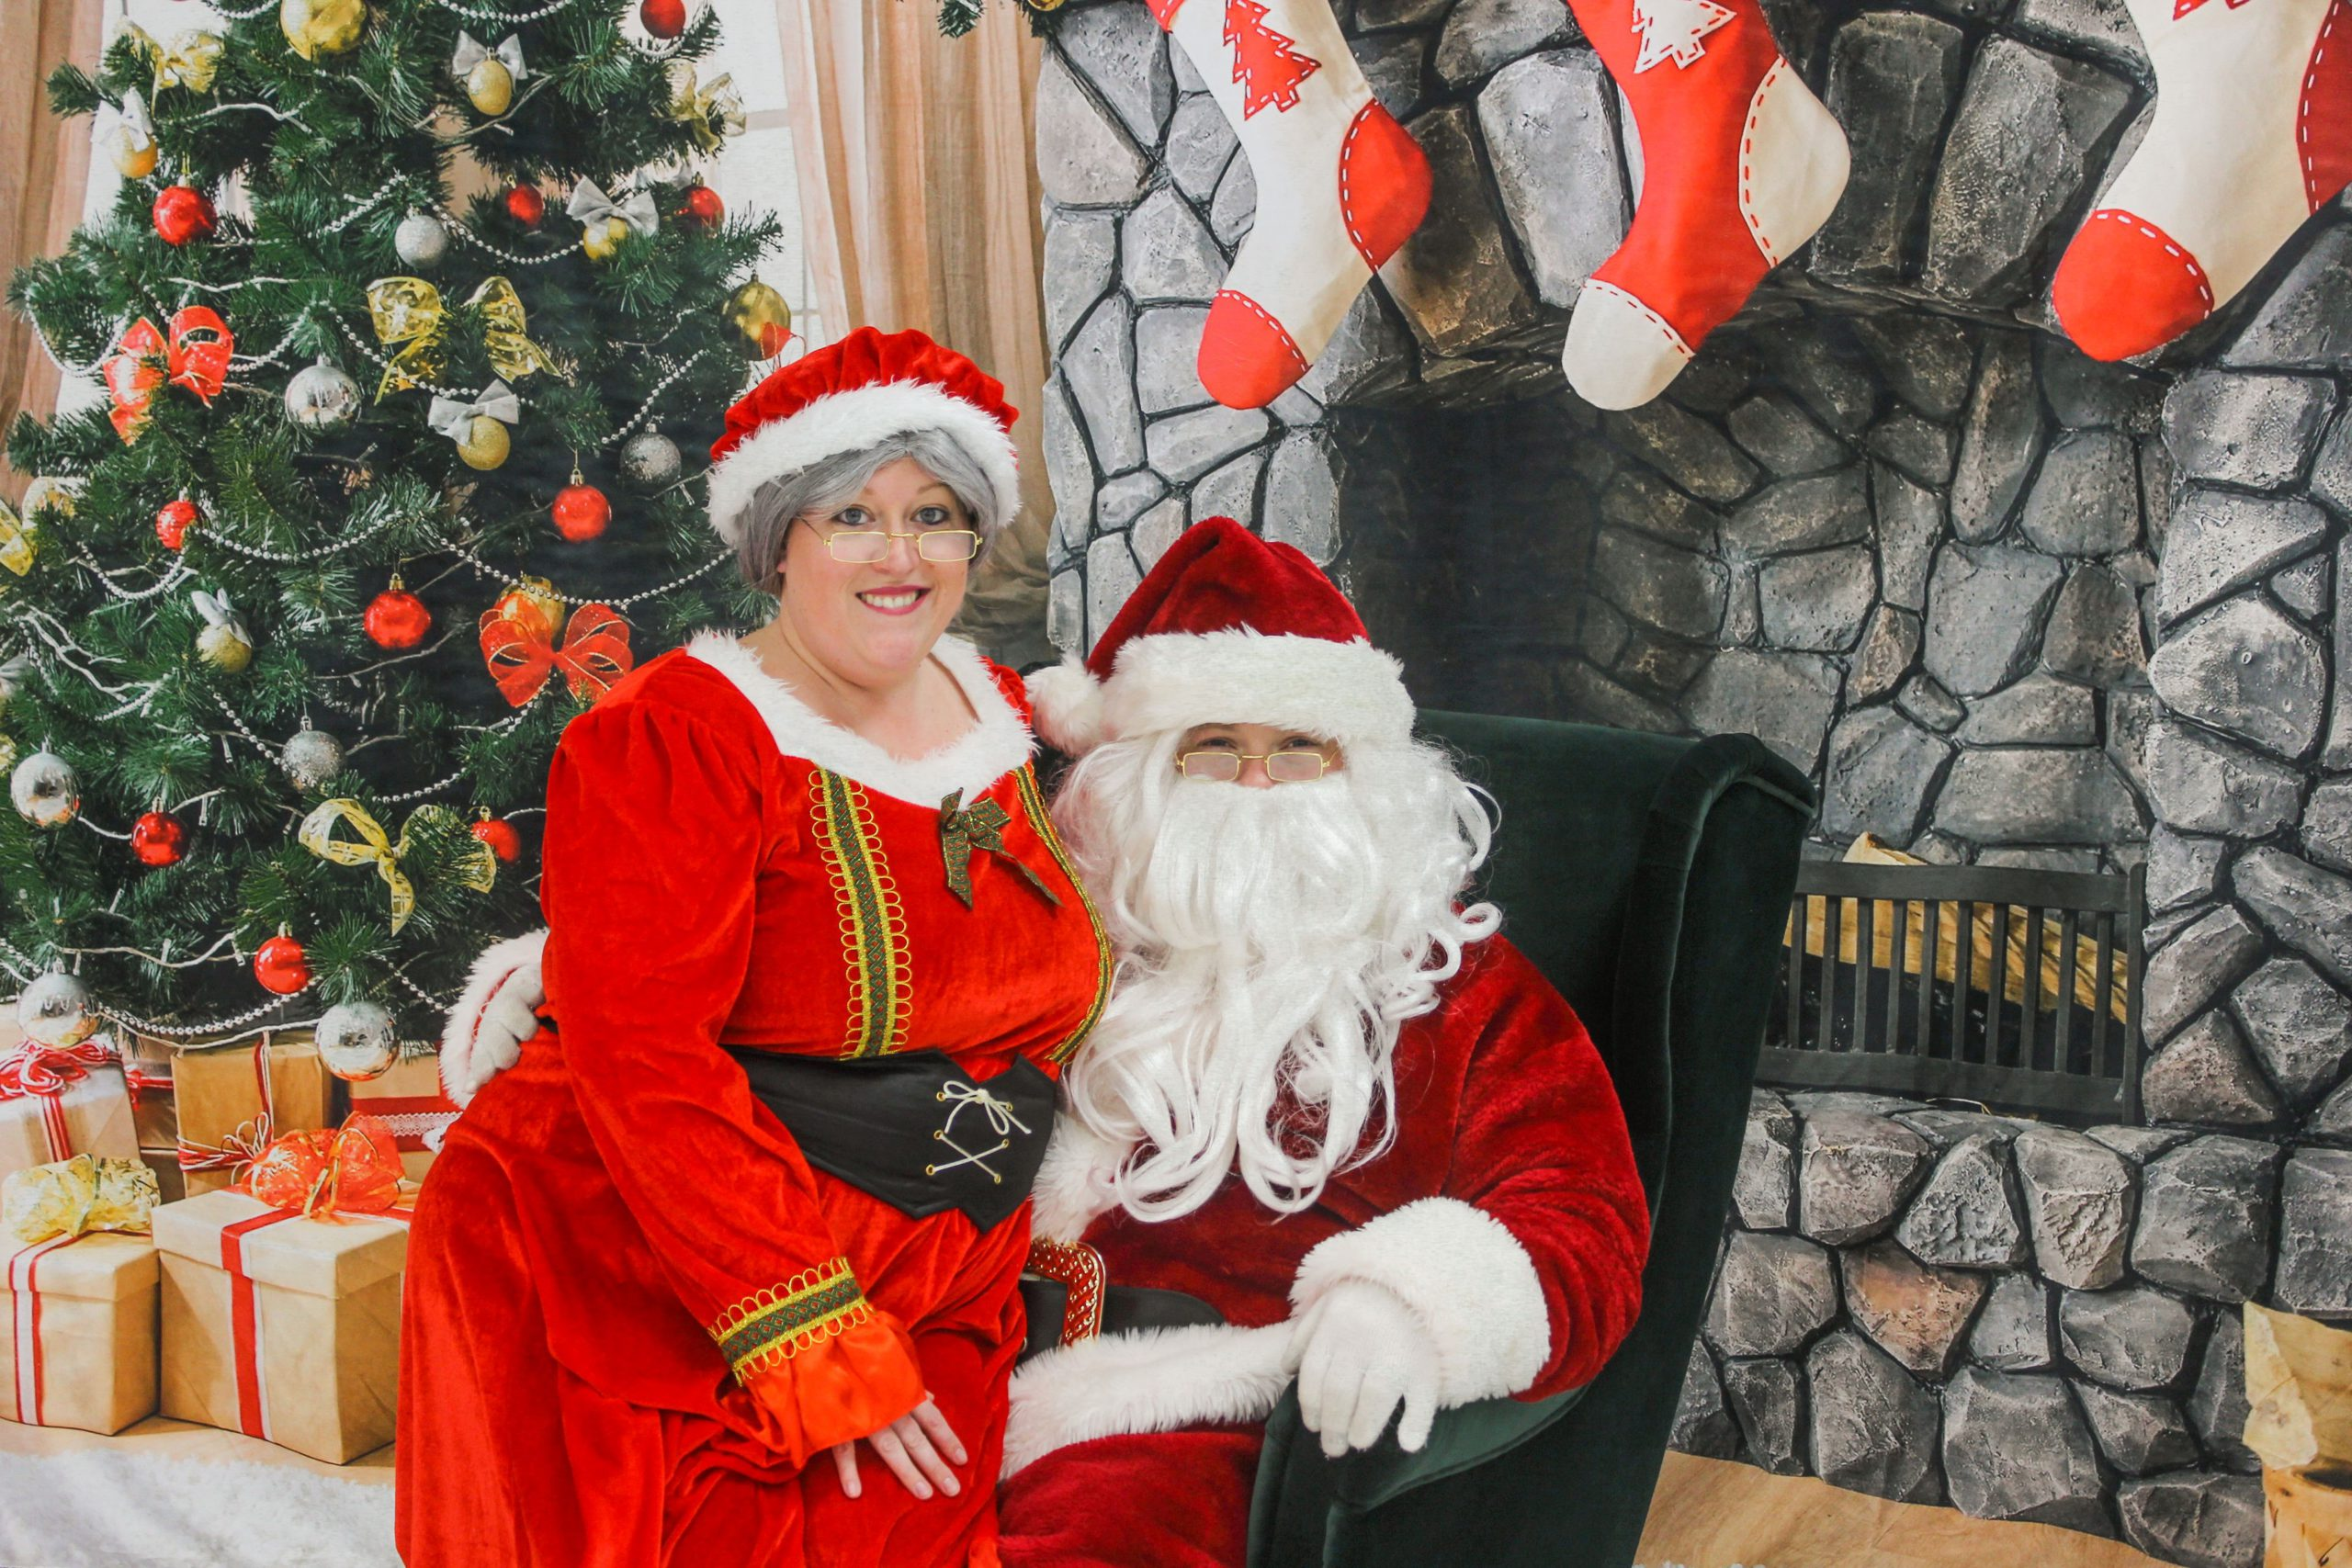 Lee and Megan Rodgers from Spryfield have been dressing up as Santa and Mrs. Claus for six years.